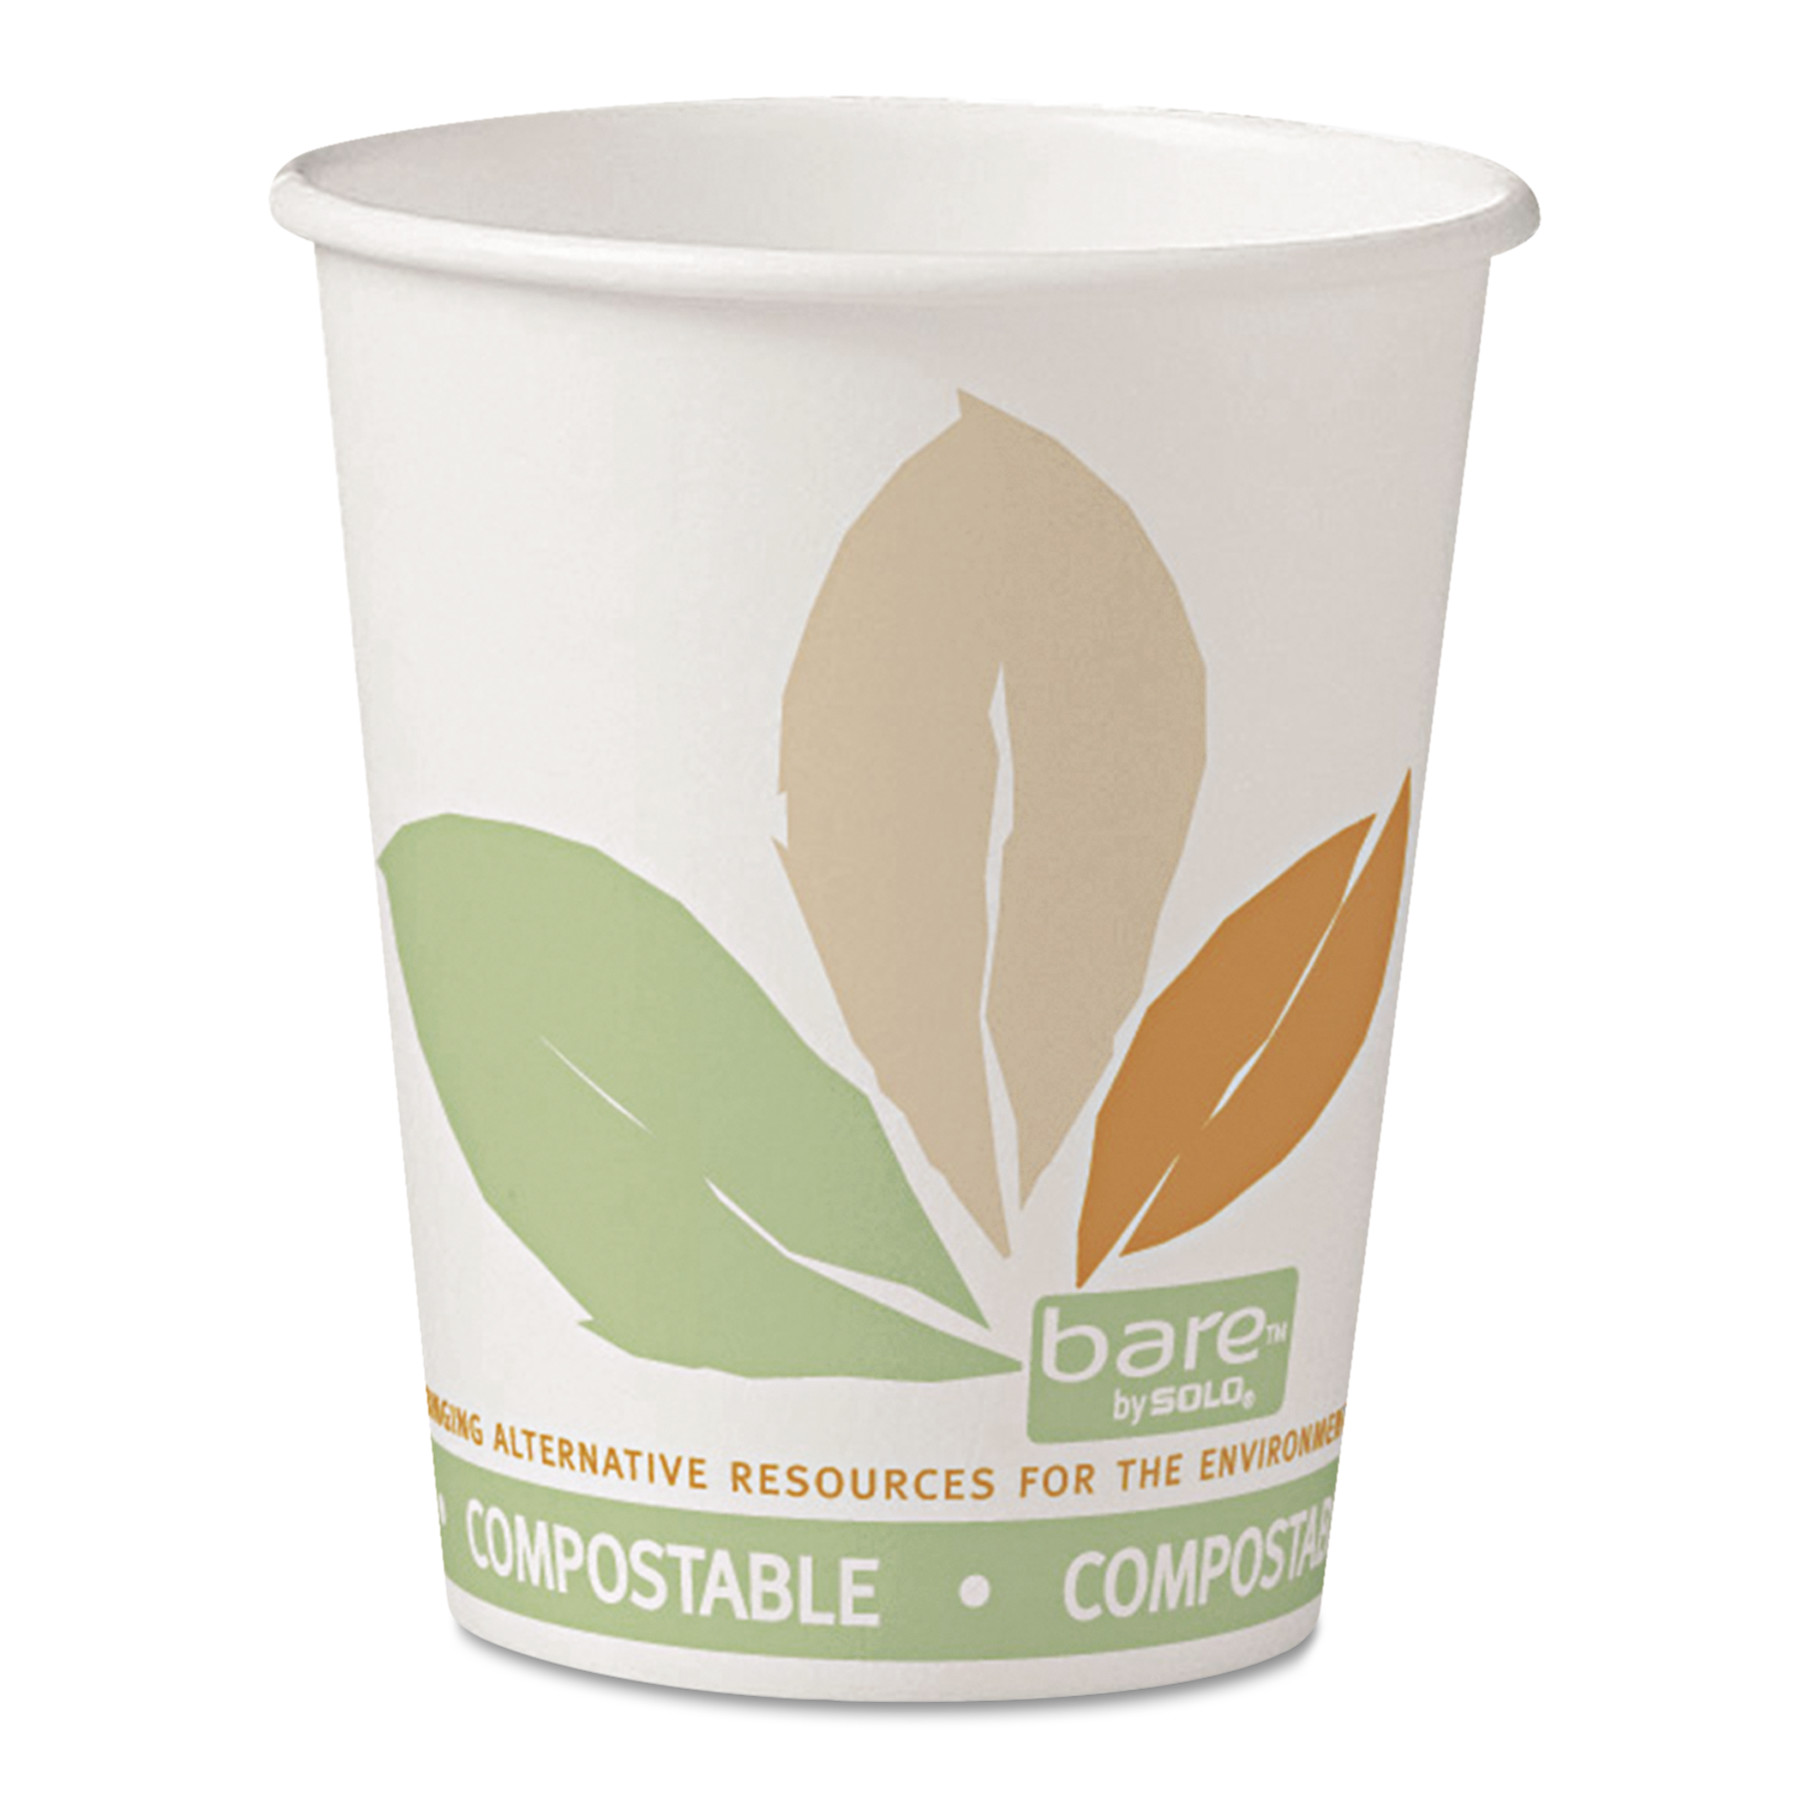 Solo Cup Company Bare White with Leaf Design PLA Paper 10 oz. Hot Cups, 20 Packs of 50, 1000 Cups Total